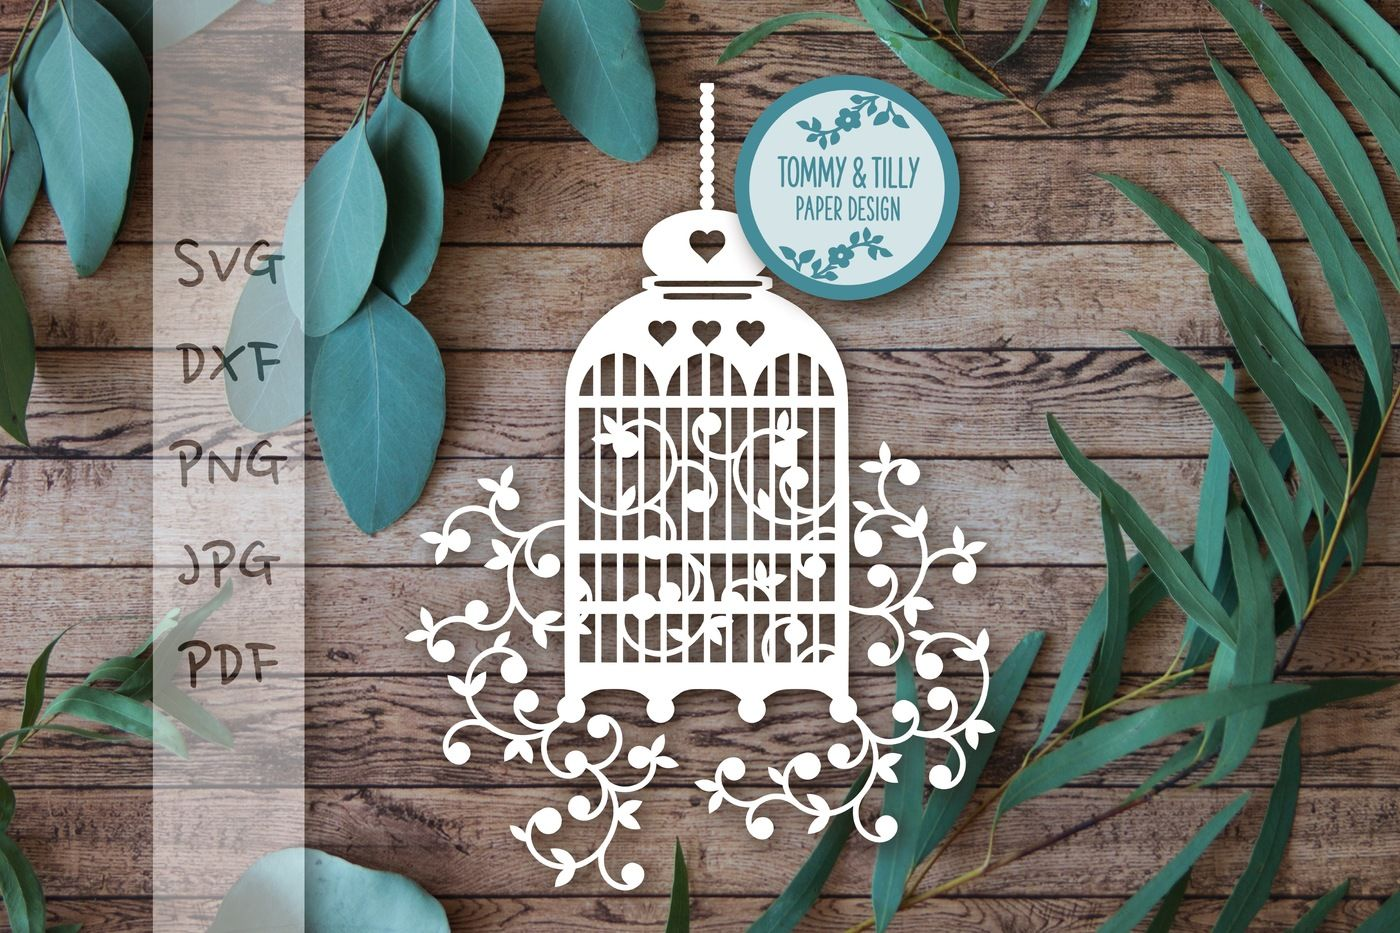 Birdcage Svg Pdf Png Dxf Png By Tommy And Tilly Design Thehungryjpeg Com